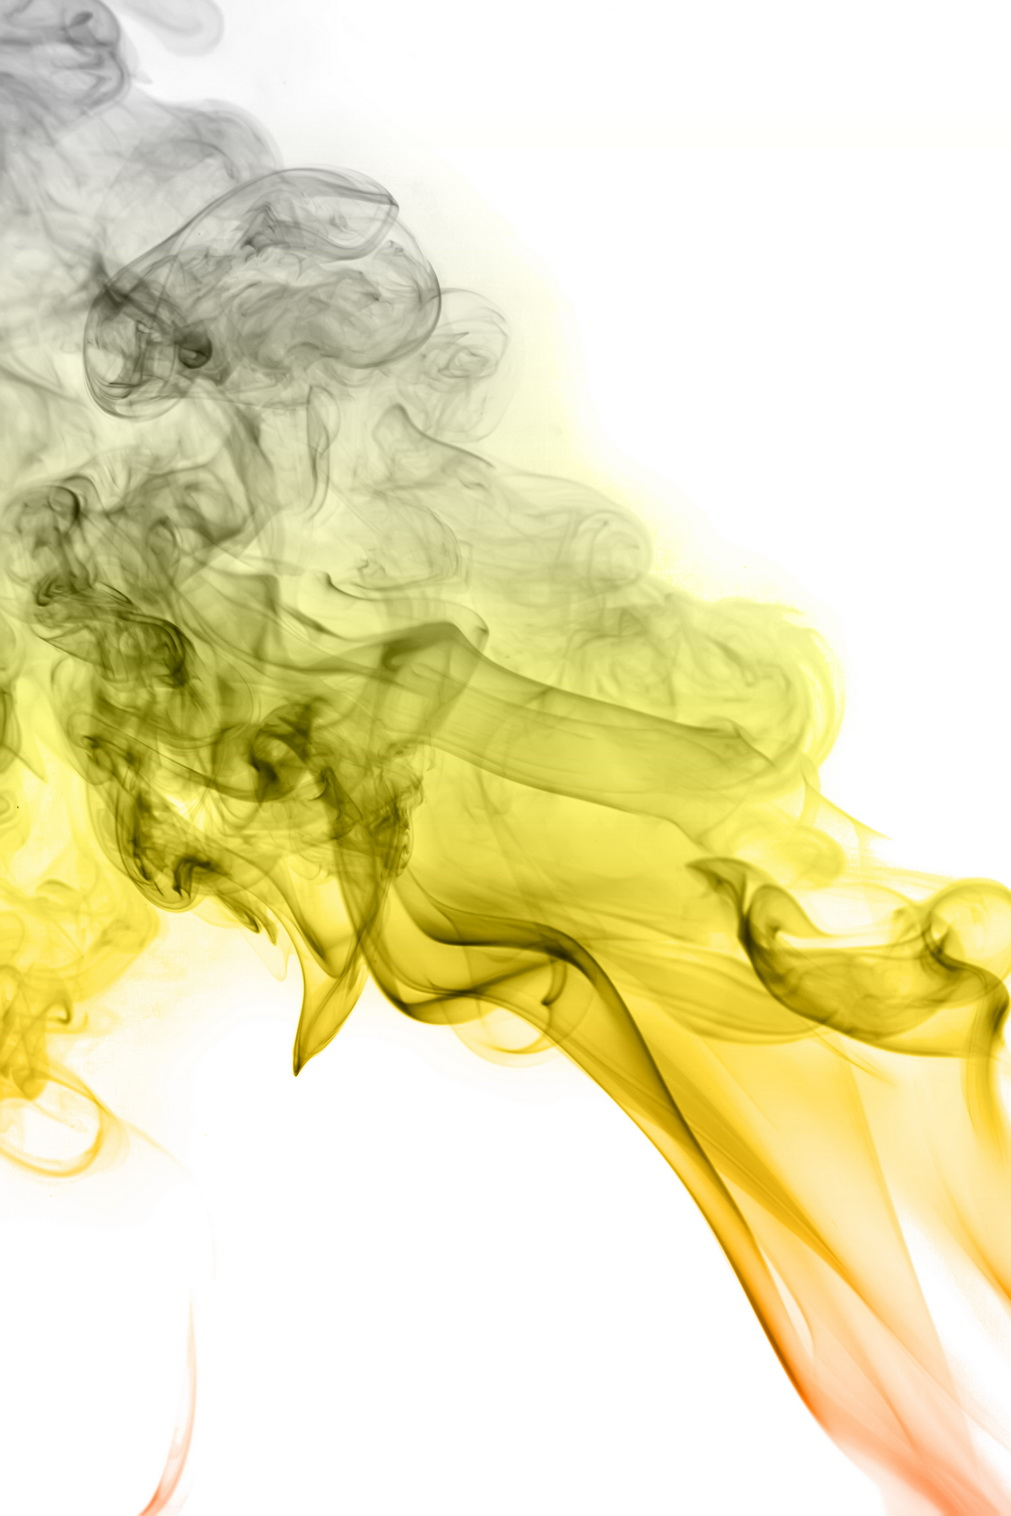 yellow smoke, Smoke, Image, Isolated, Magic, HQ Photo